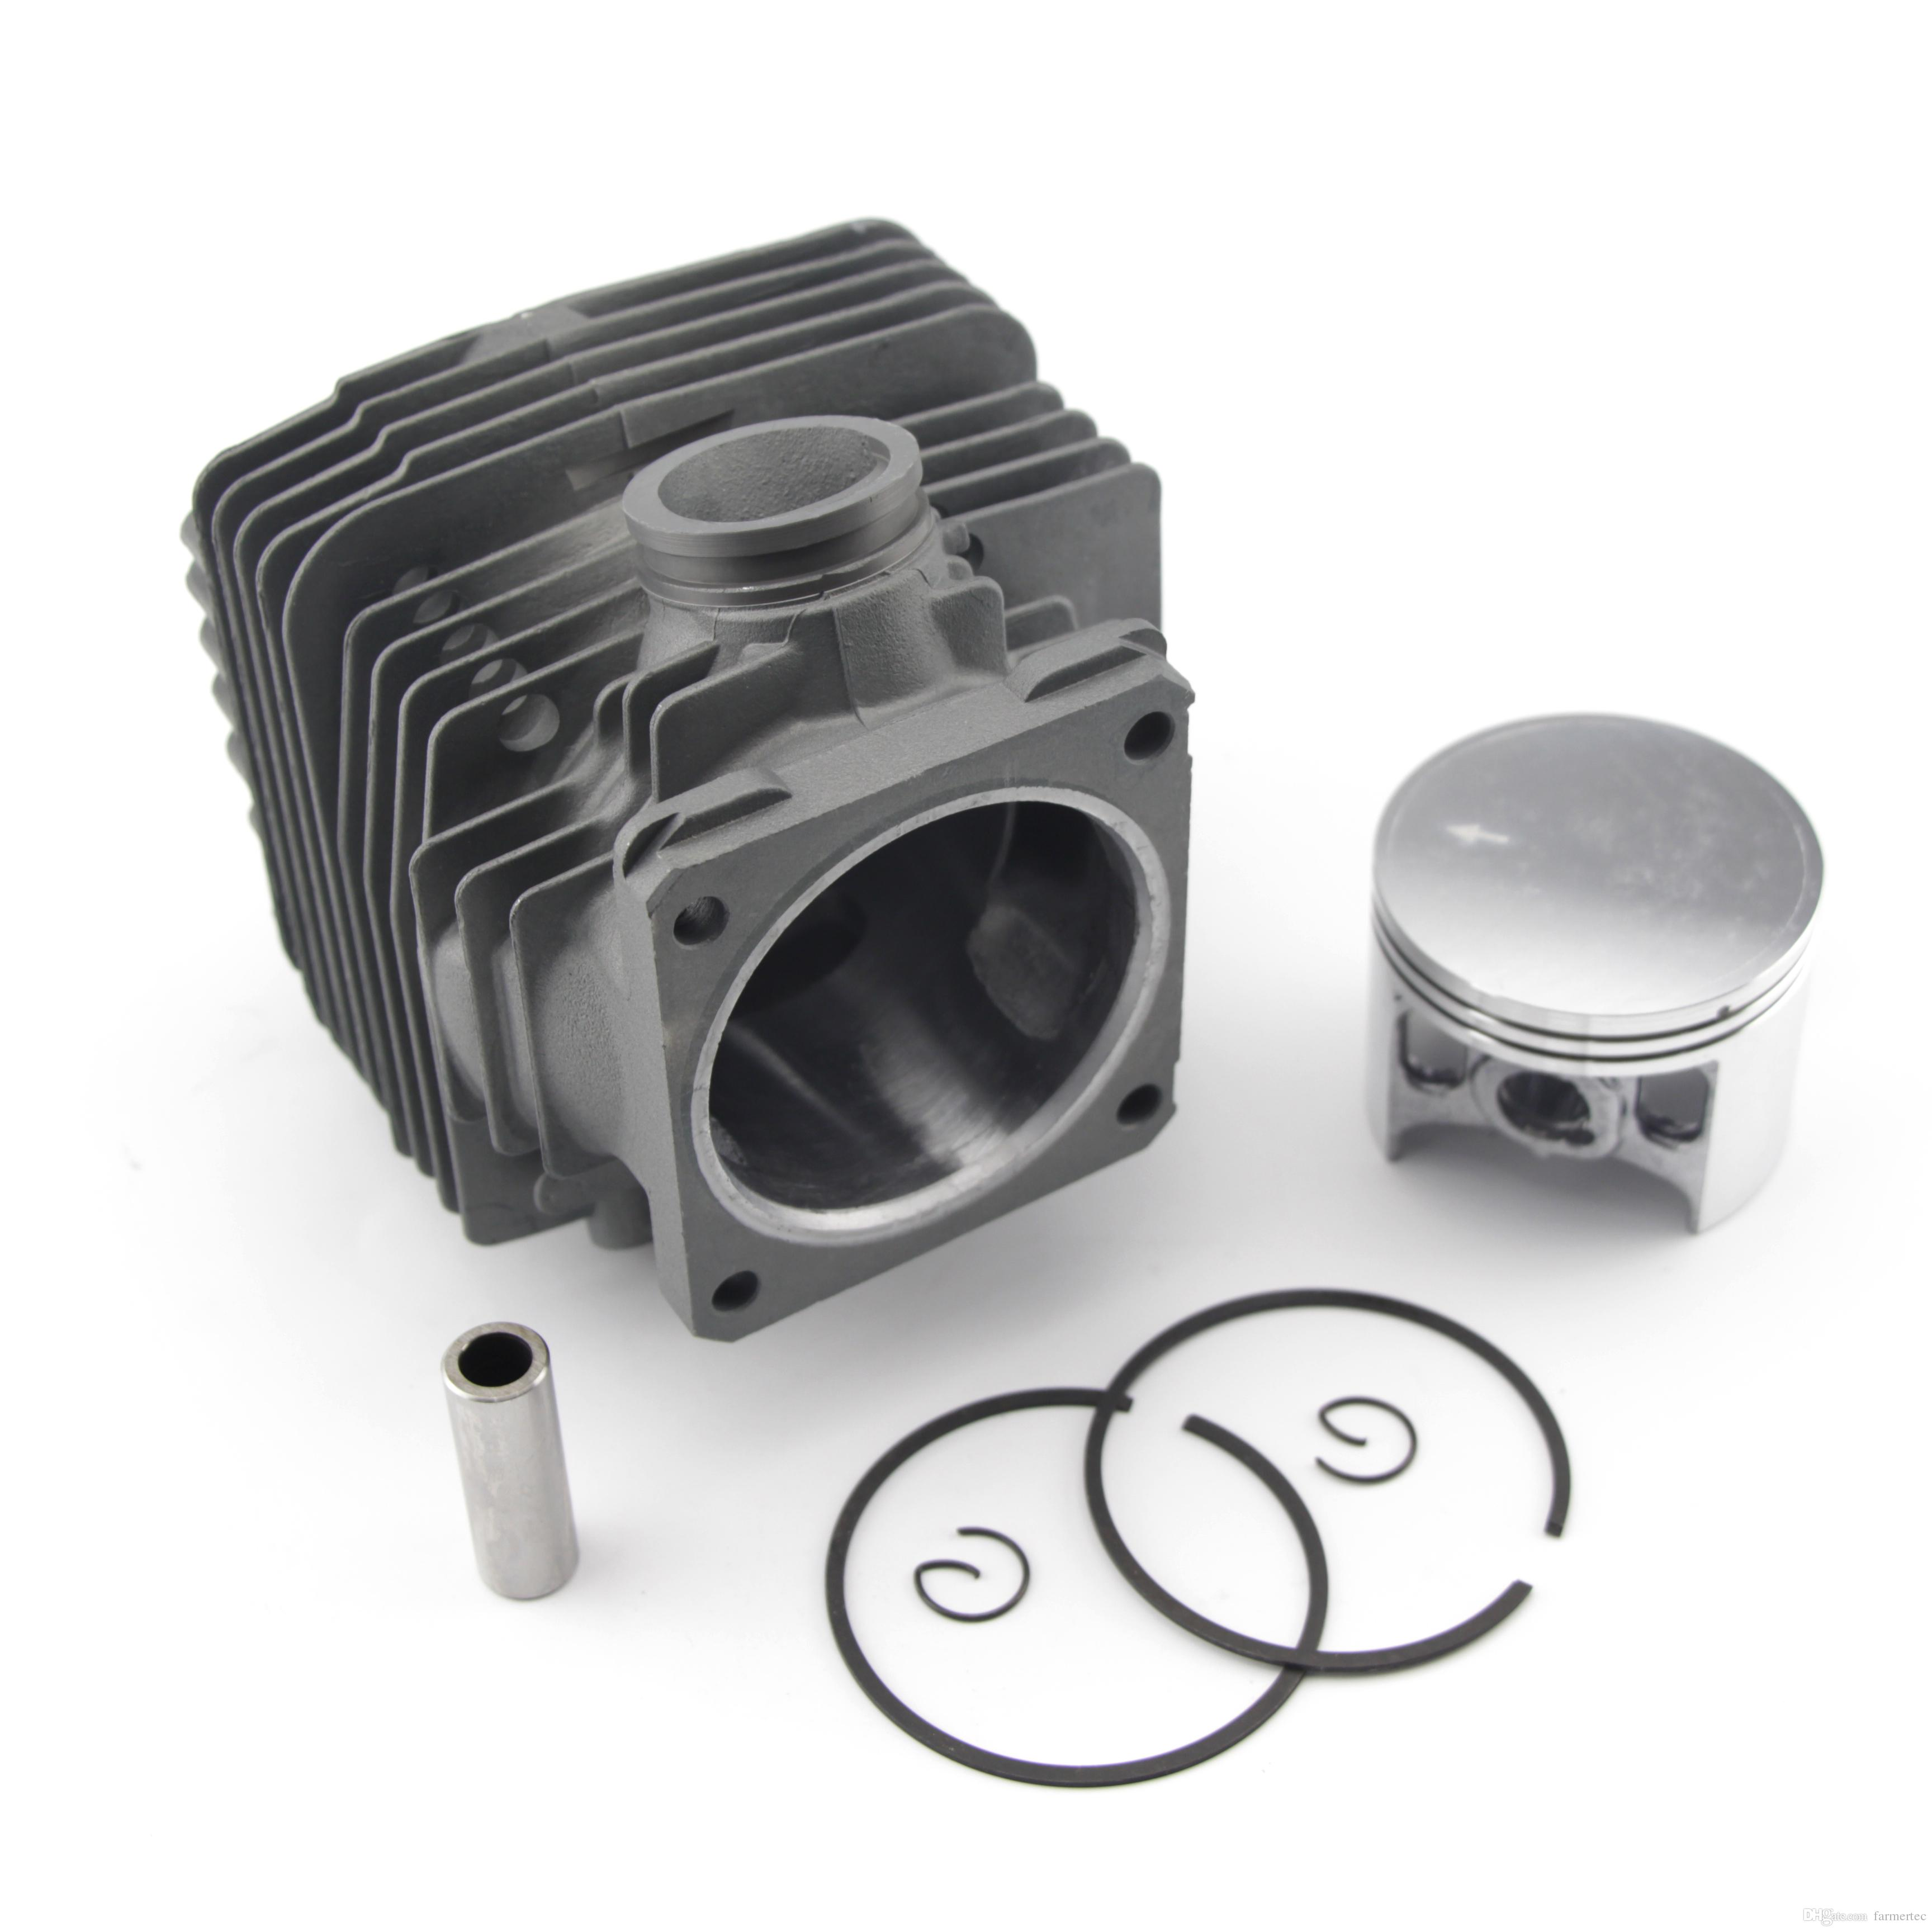 Cylindre piston Set Convient Pour STIHL ms880 60 mm Cylinder kit with piston